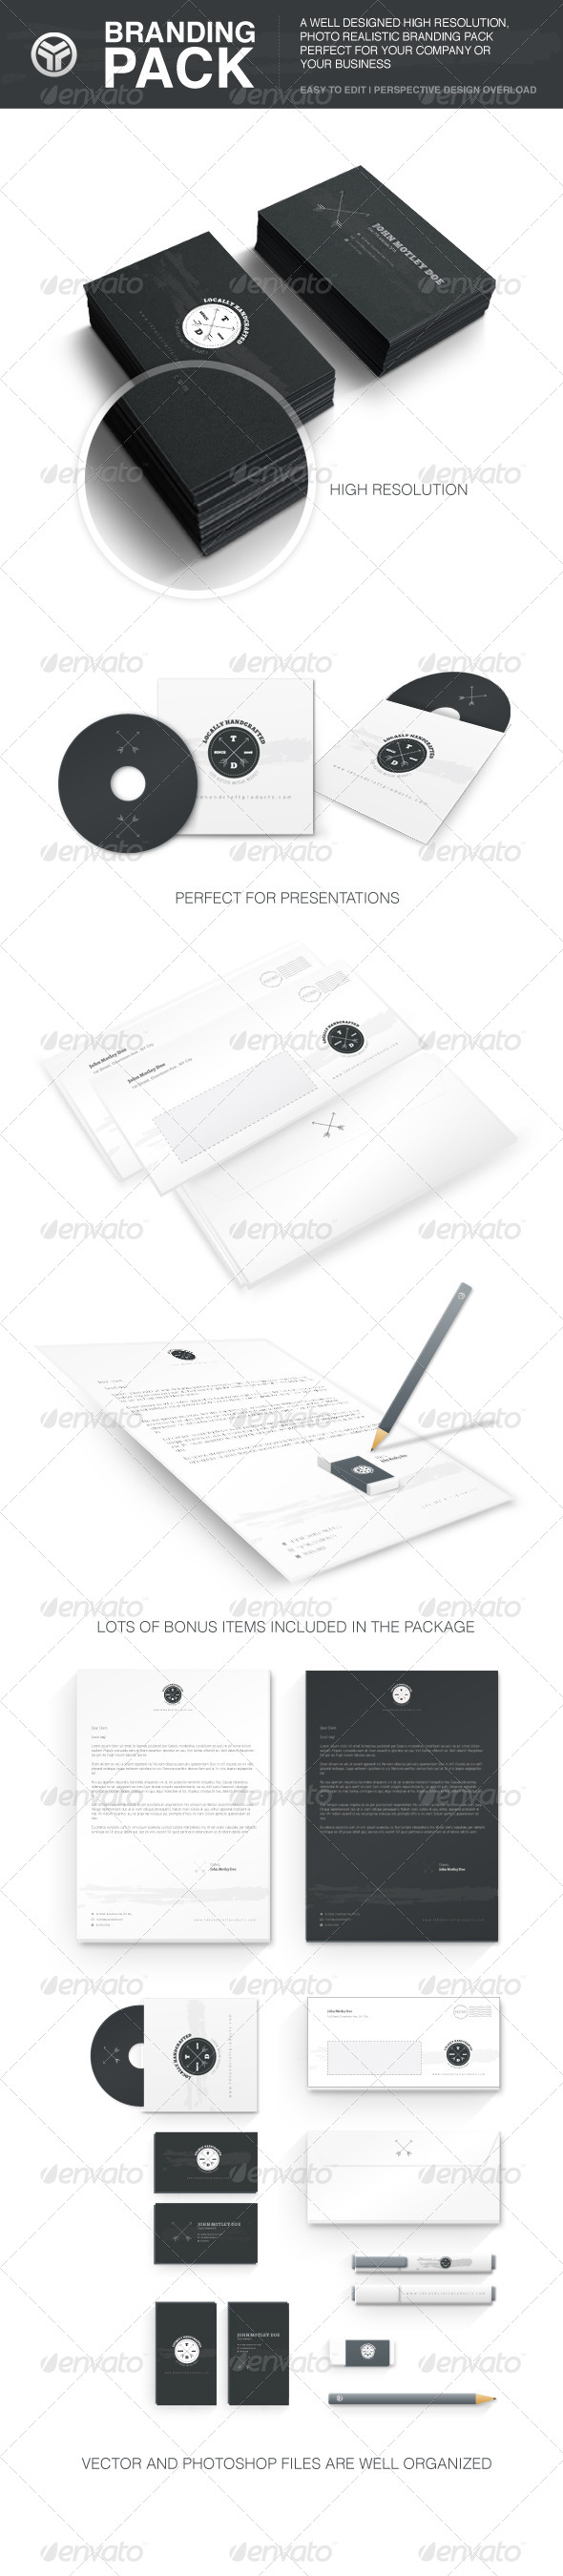 GraphicRiver TD Branding Pack 01 5349705